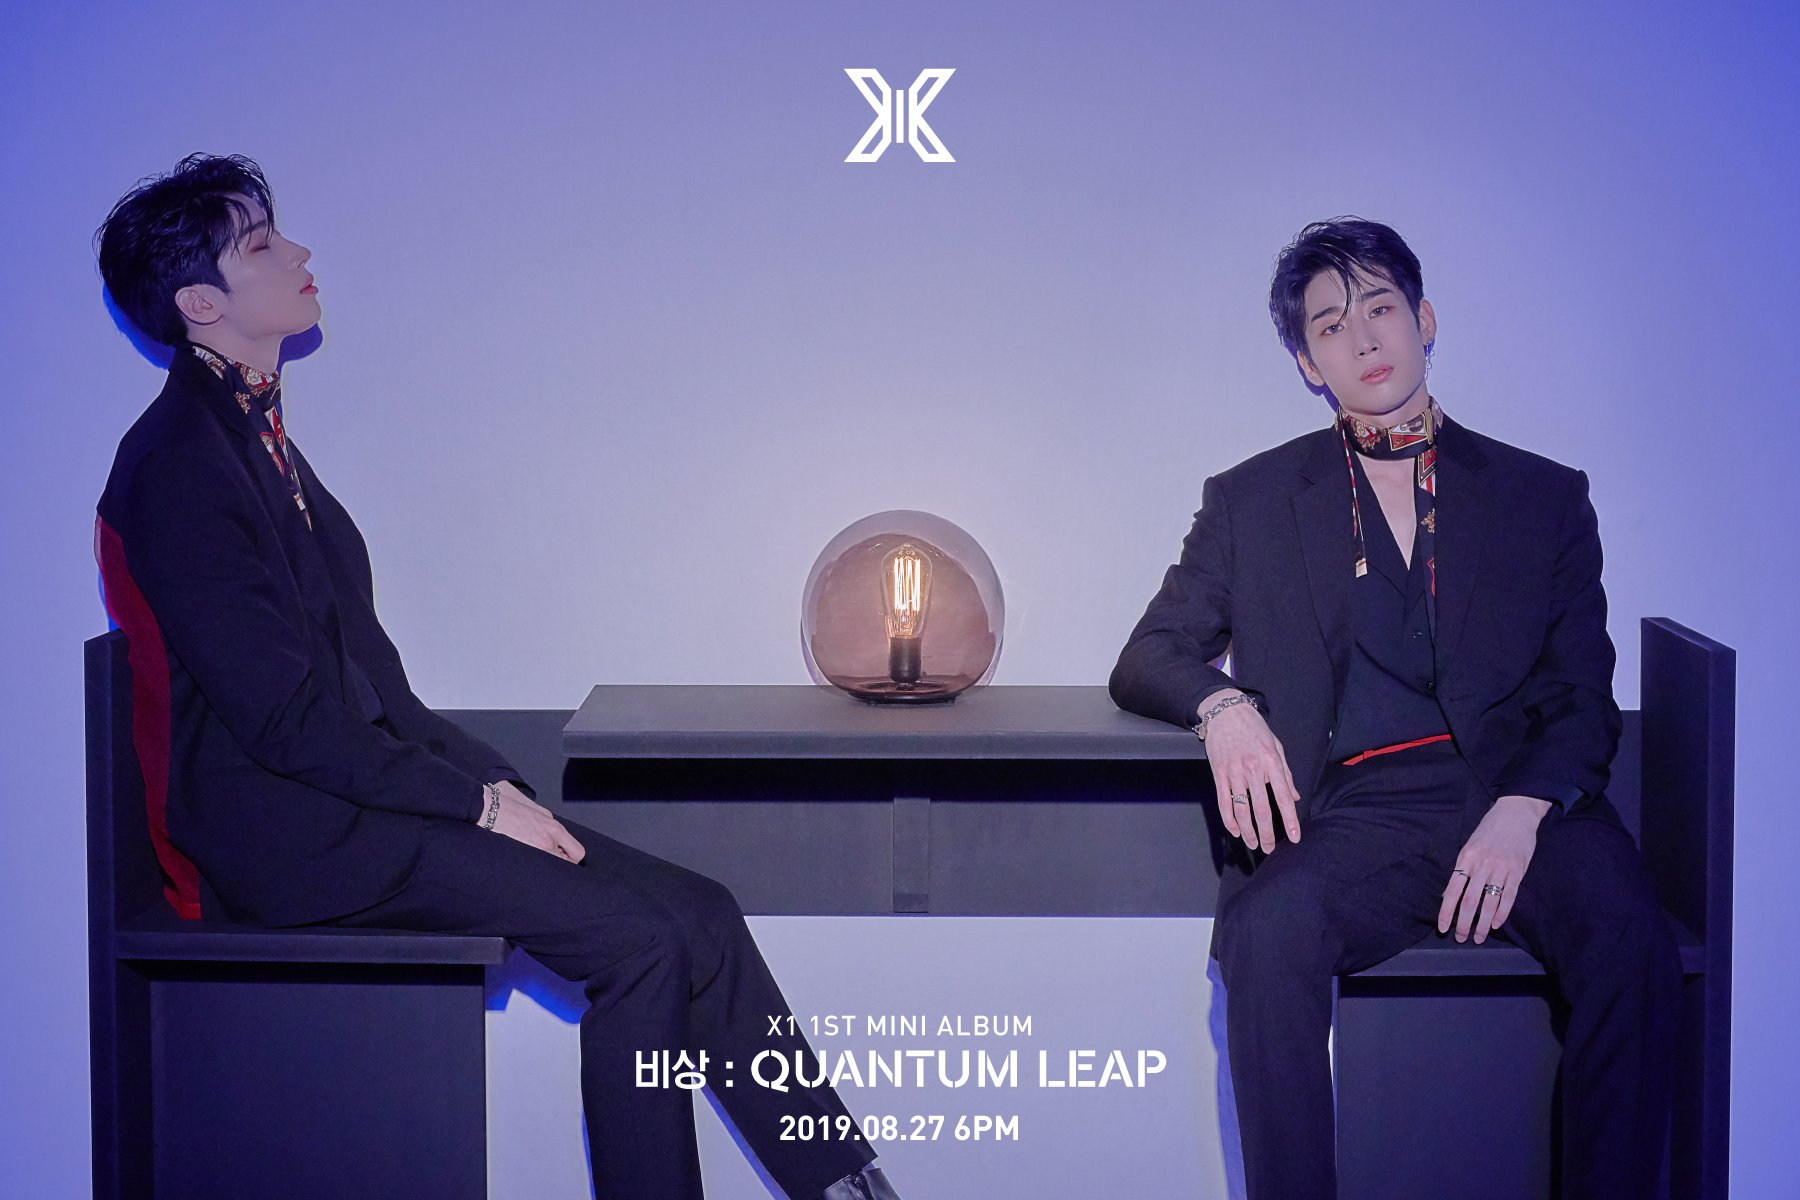 x1, x1 profile, x1 facts, x1 age, x1 height, x1 facts, x1 leader, x1 member, x1 debut, x1 quantum leap, x1 han seungwoo, han seungwoo, victon han seungwoo,